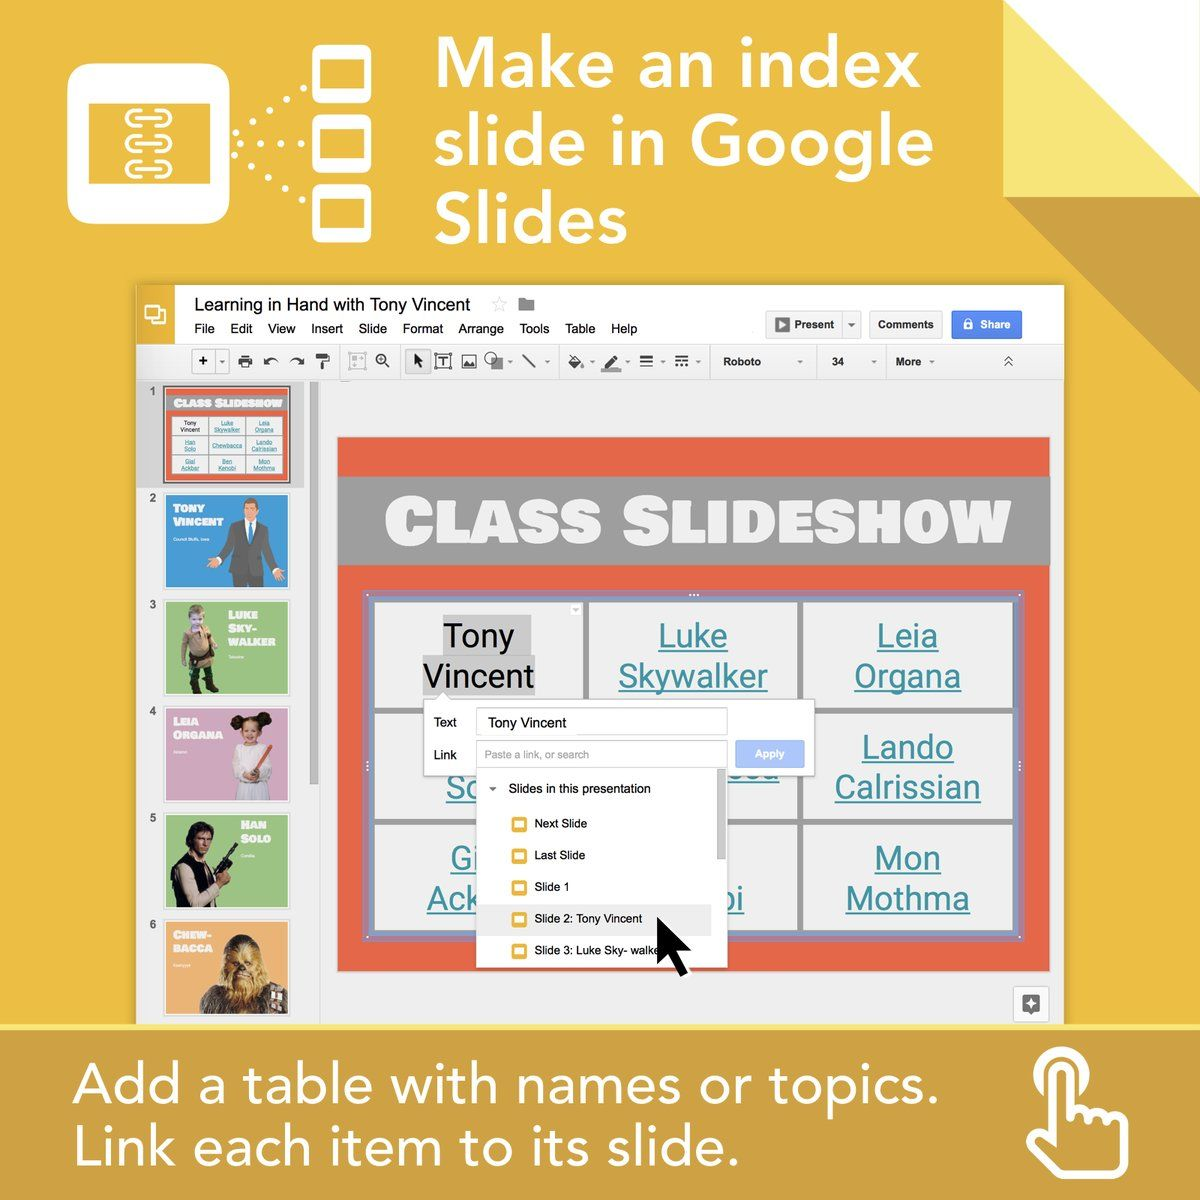 📇 Creating a collaborative Google Slides project? Consider